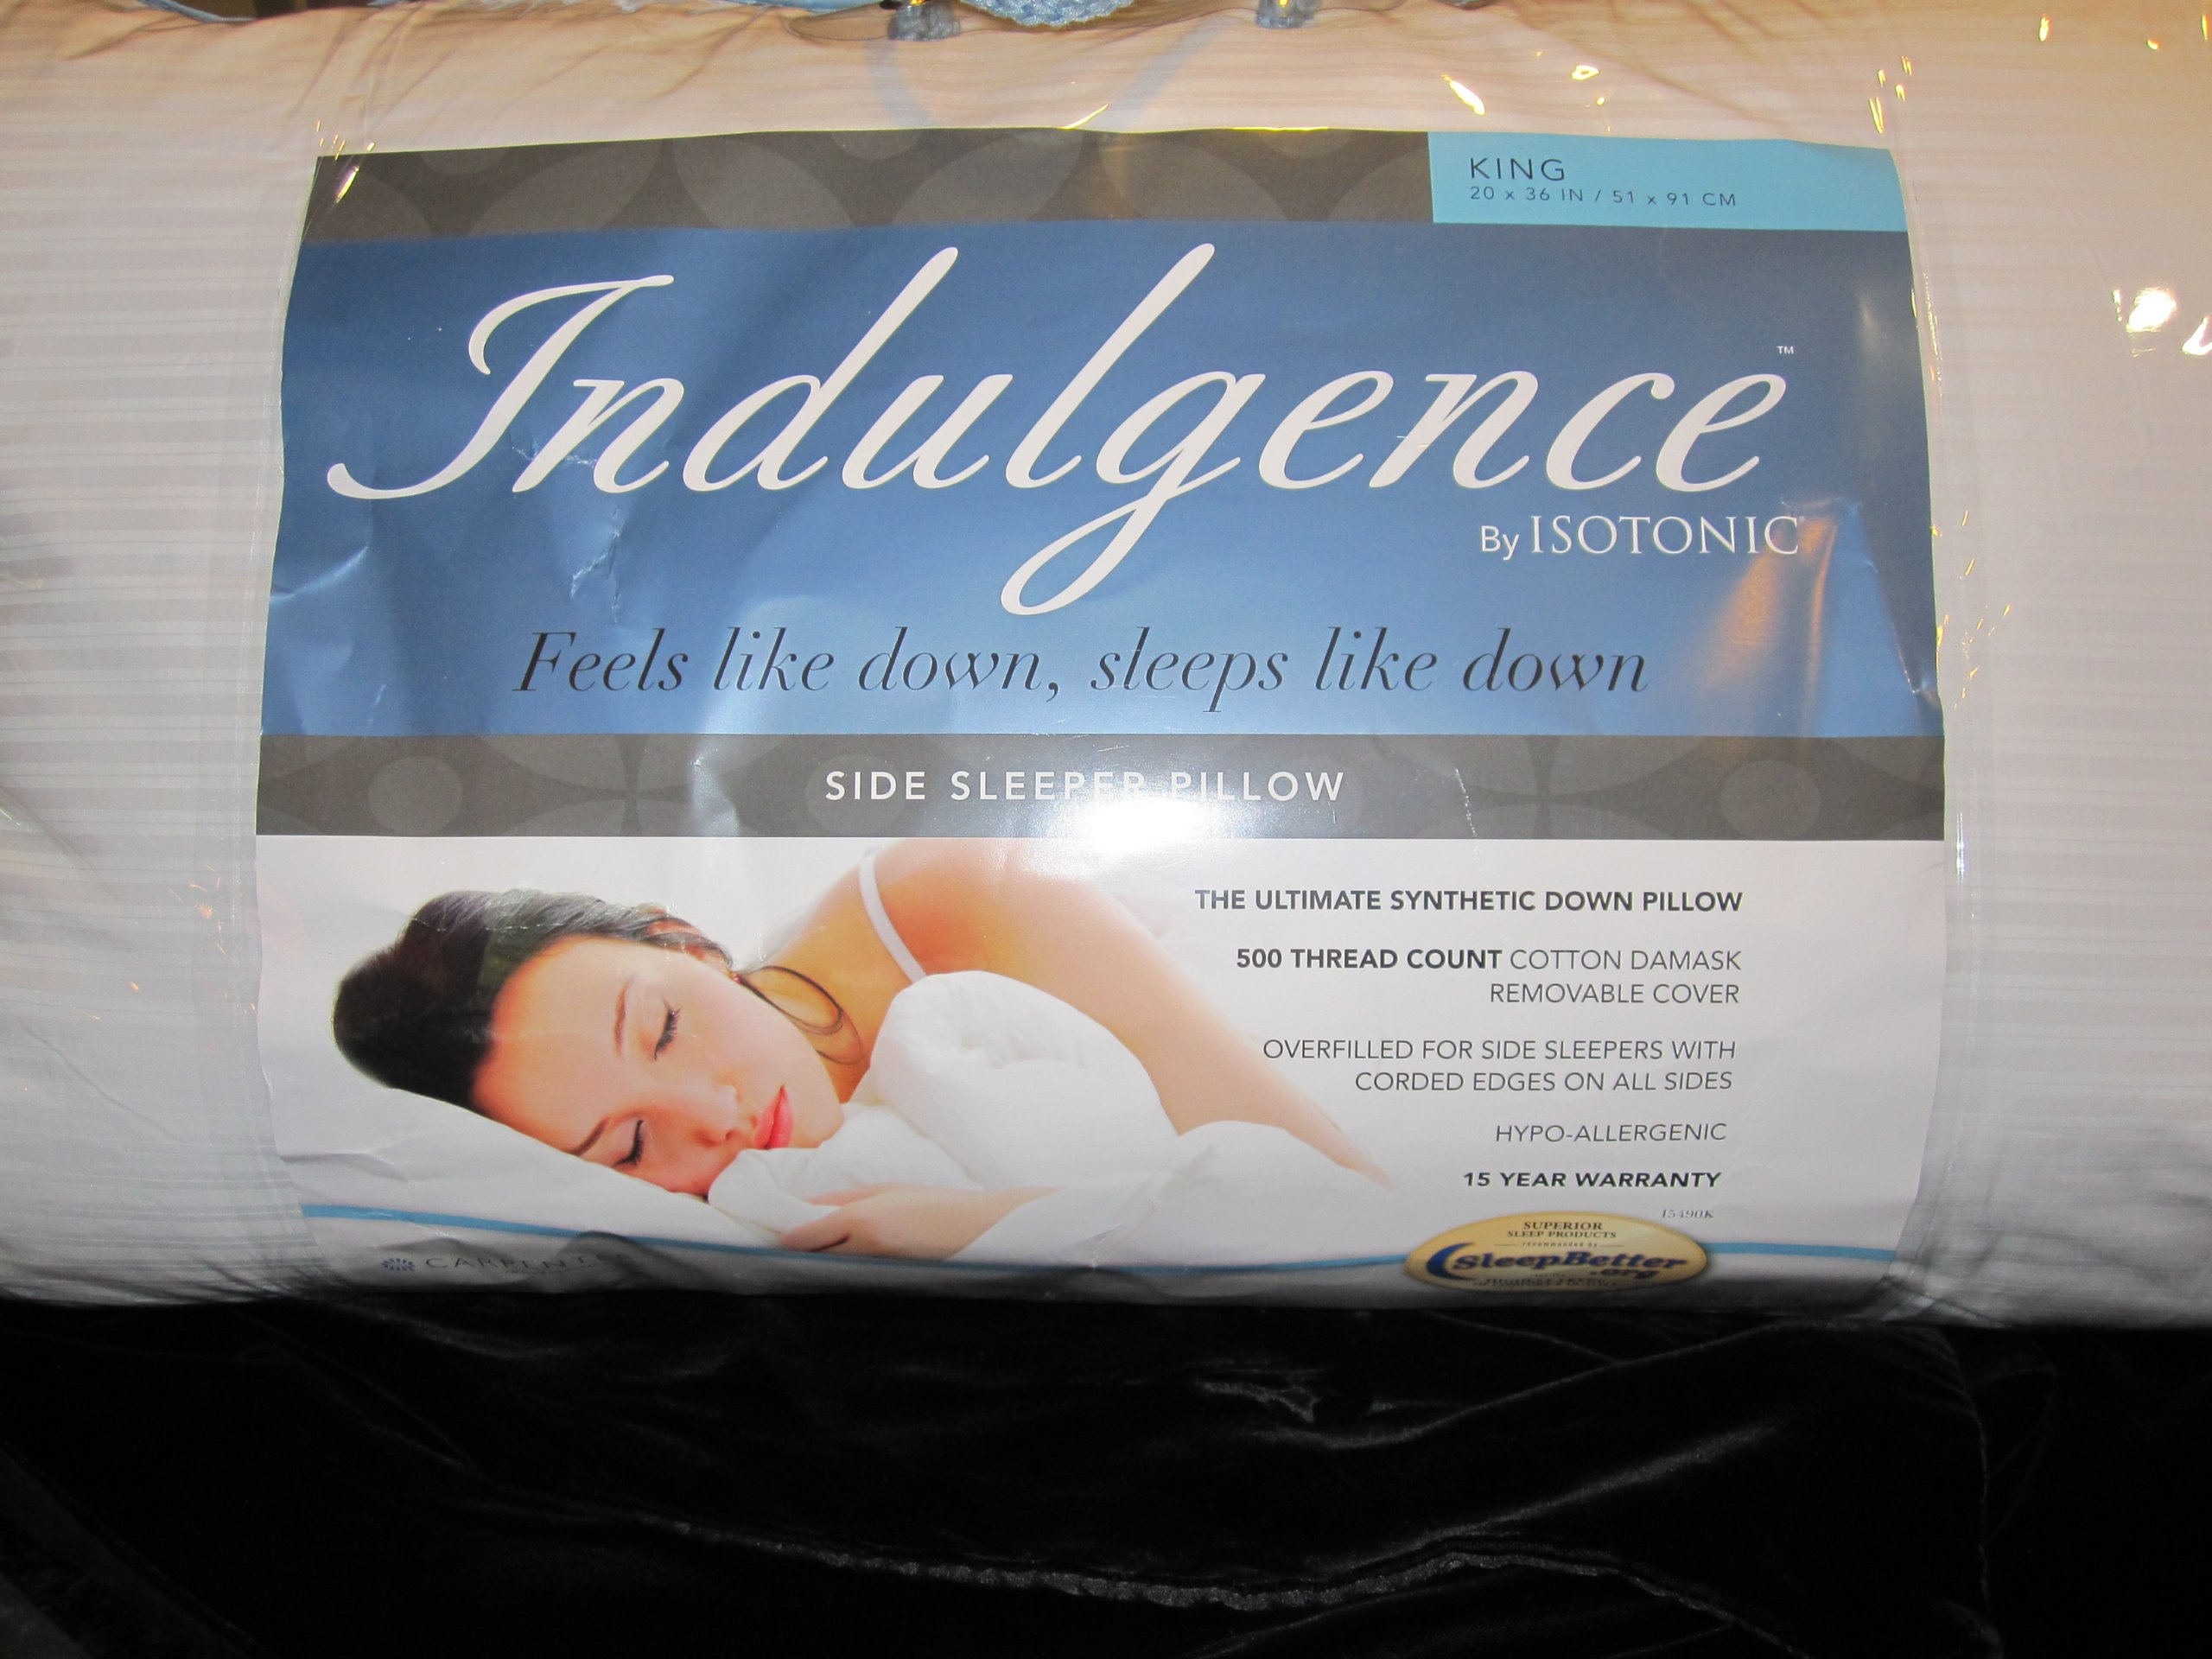 Indulgence Side Sleeper Pillow by Isotonic 36''x20'' King